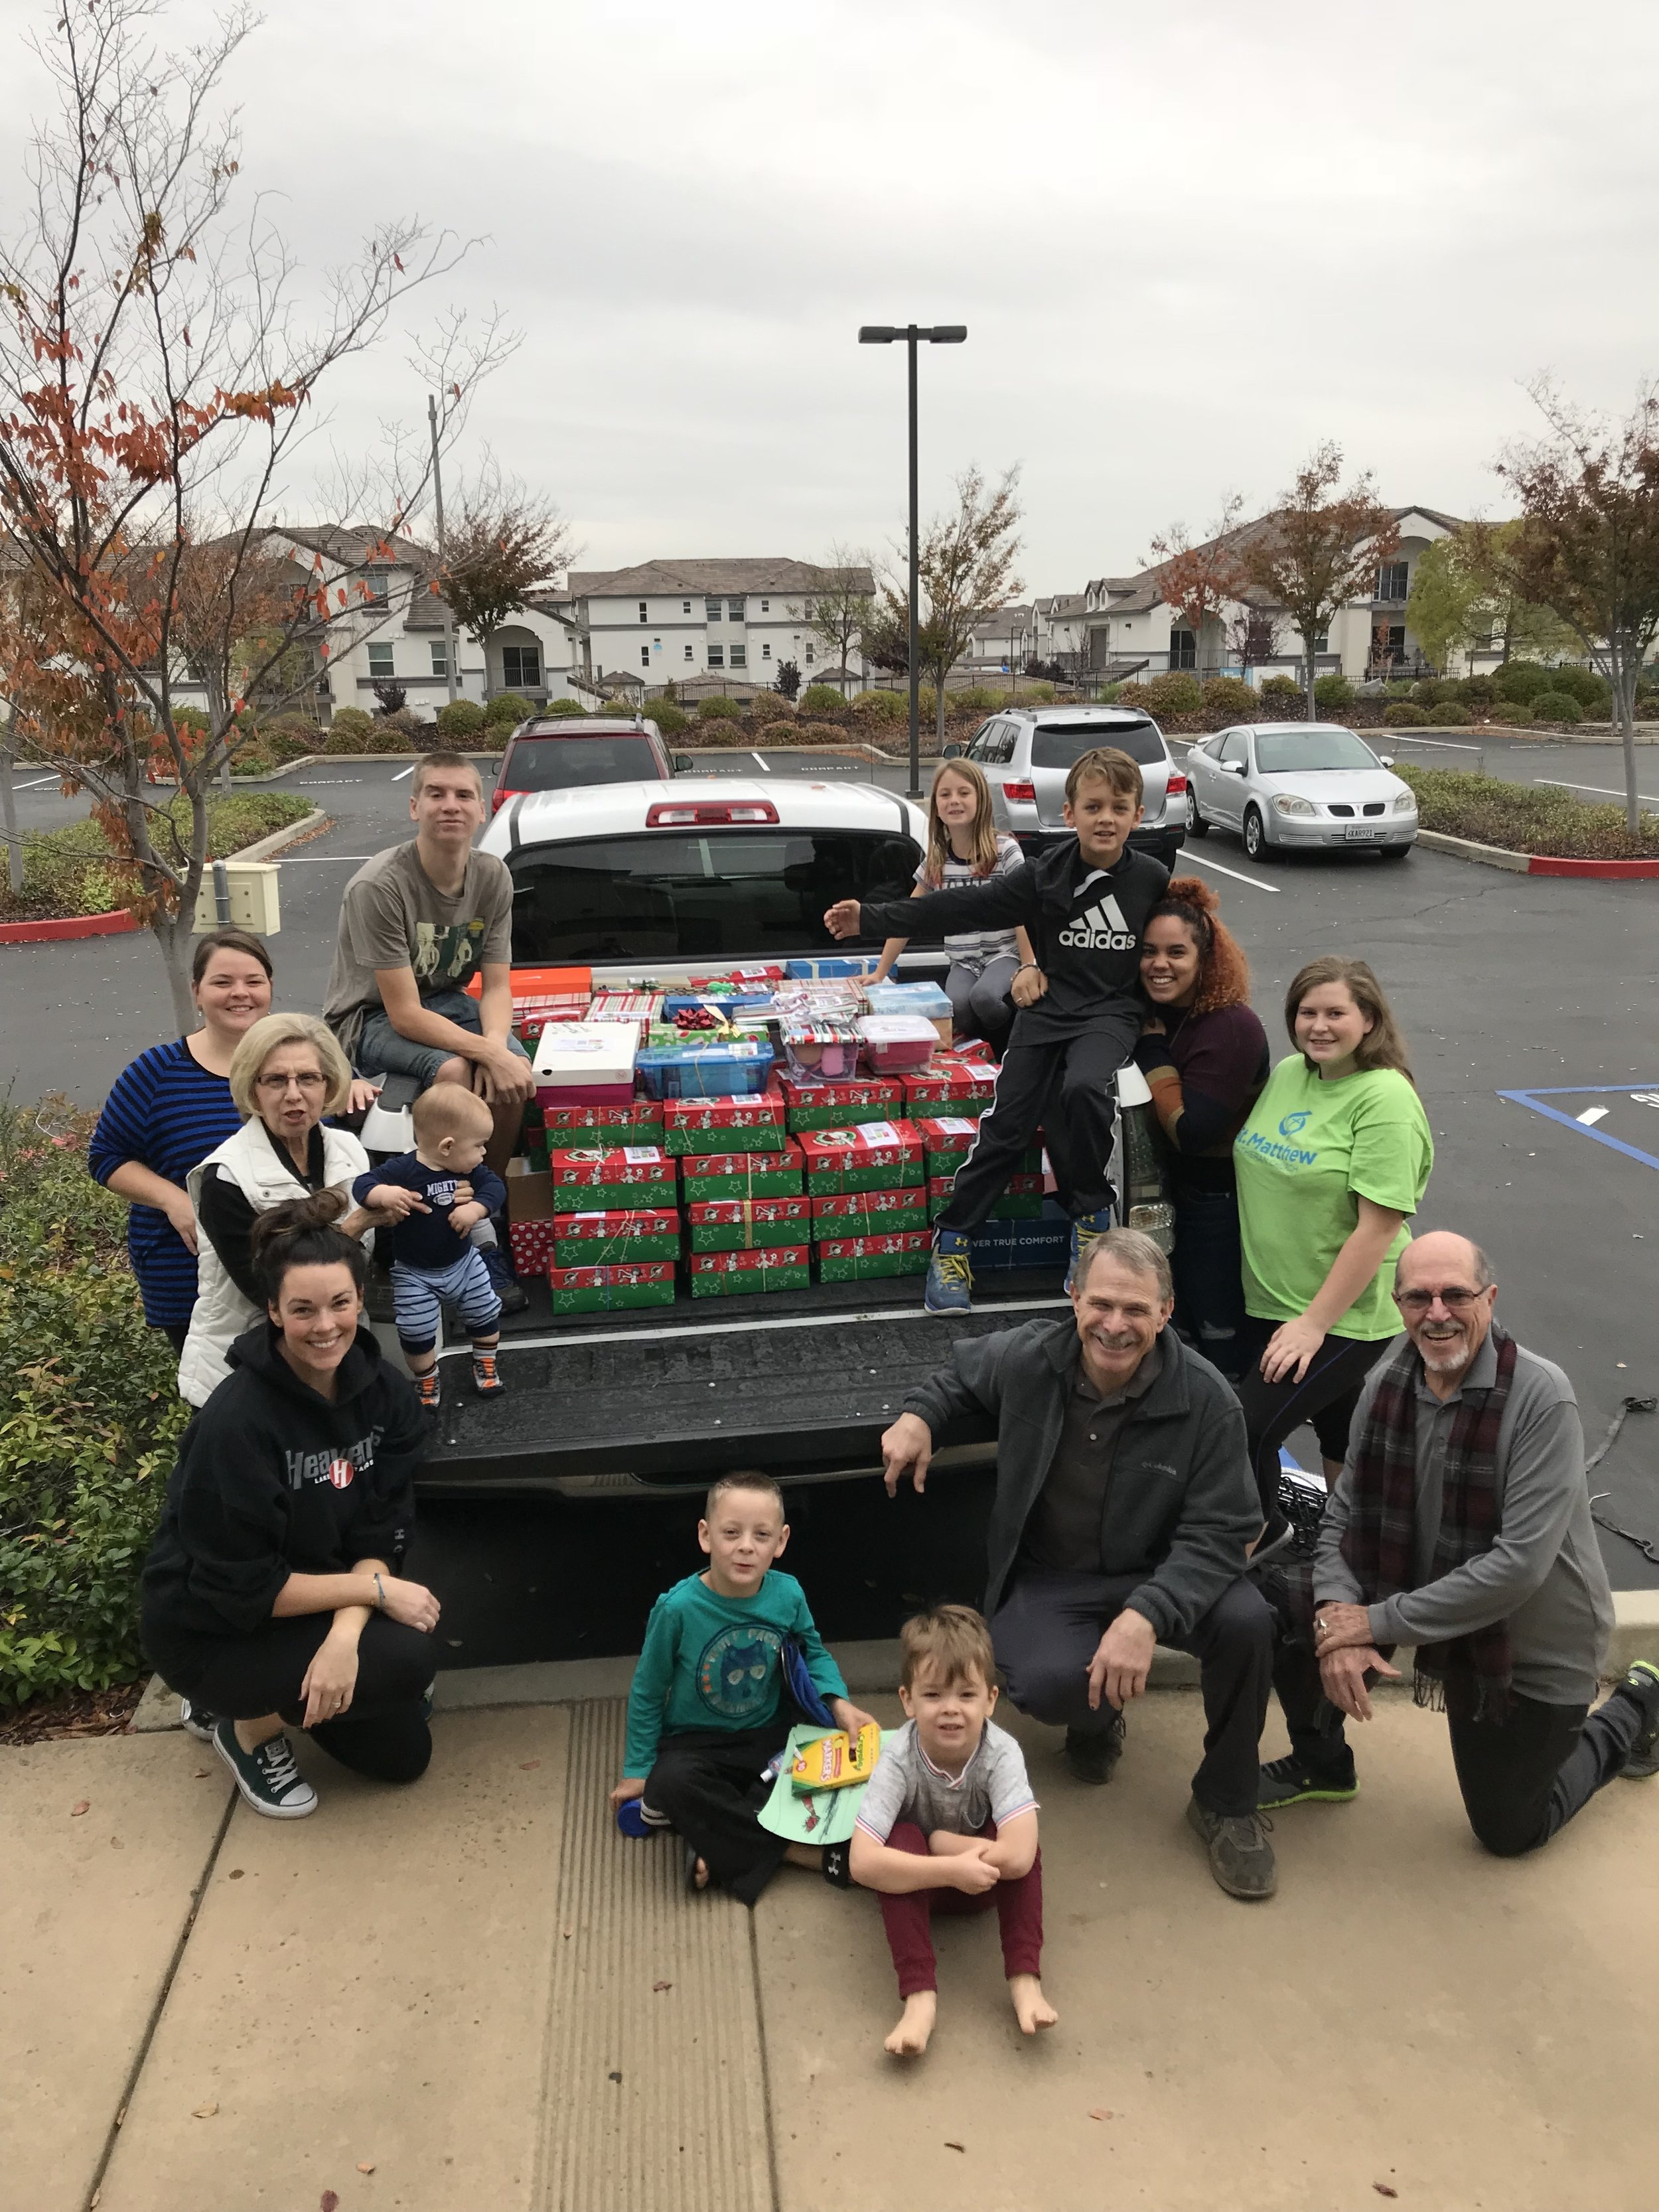 Operation Christmas Child - bring groups together to serve on a global scale